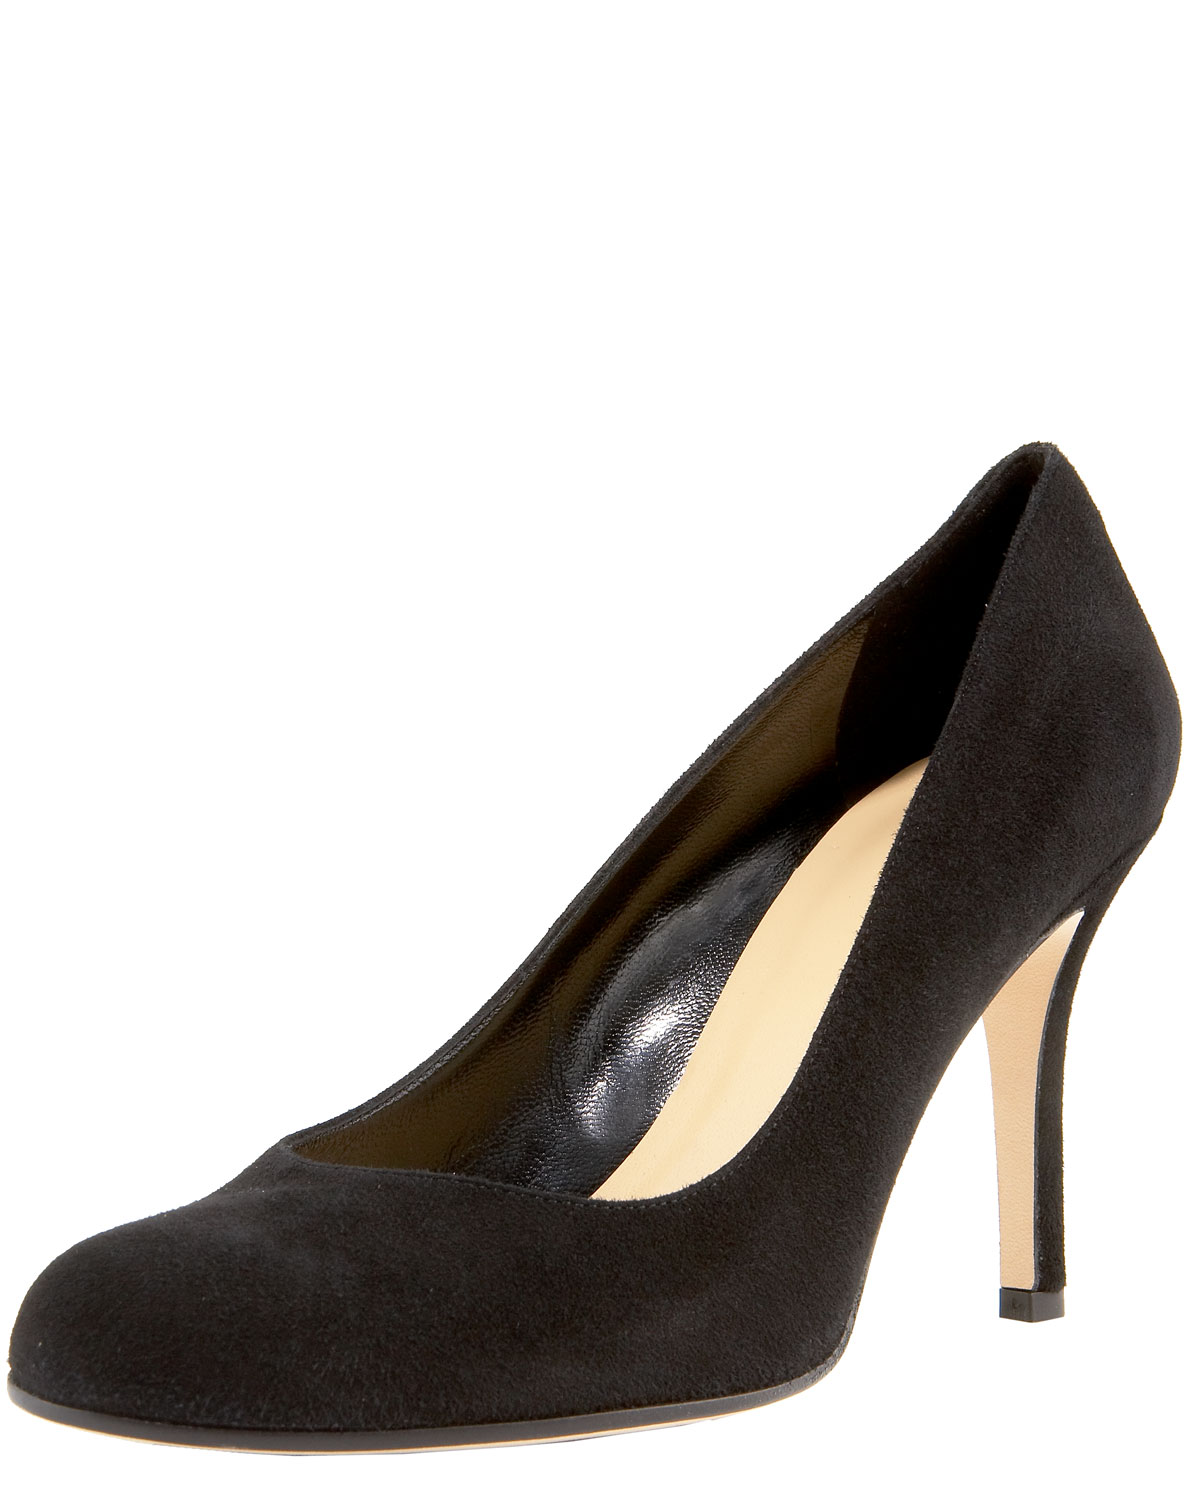 a2d0ad20dd86 Lyst - Kate Spade Pump In Black Patent Leather in Natural